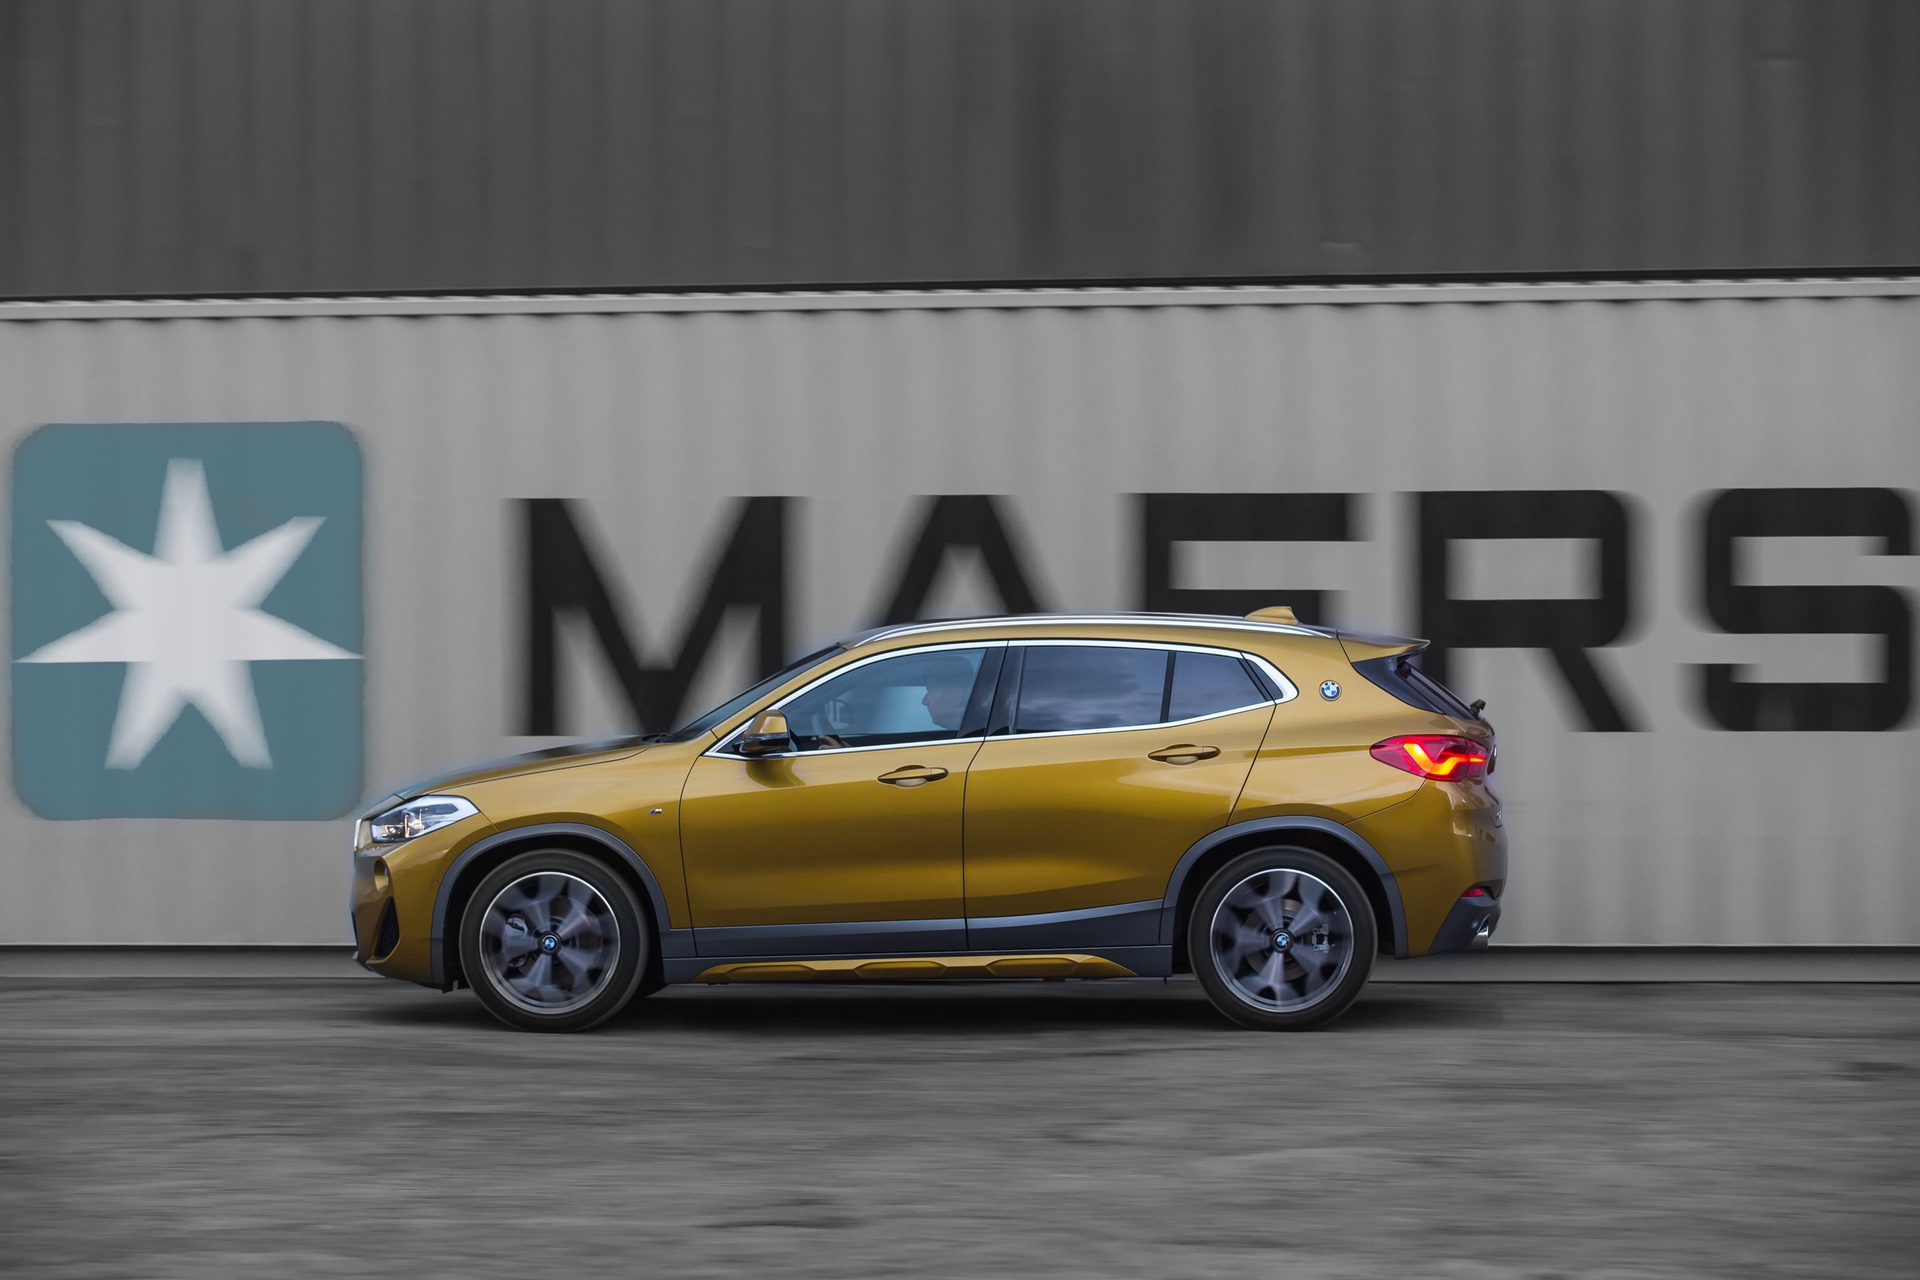 BMW_X2_Greek_presskit_0118